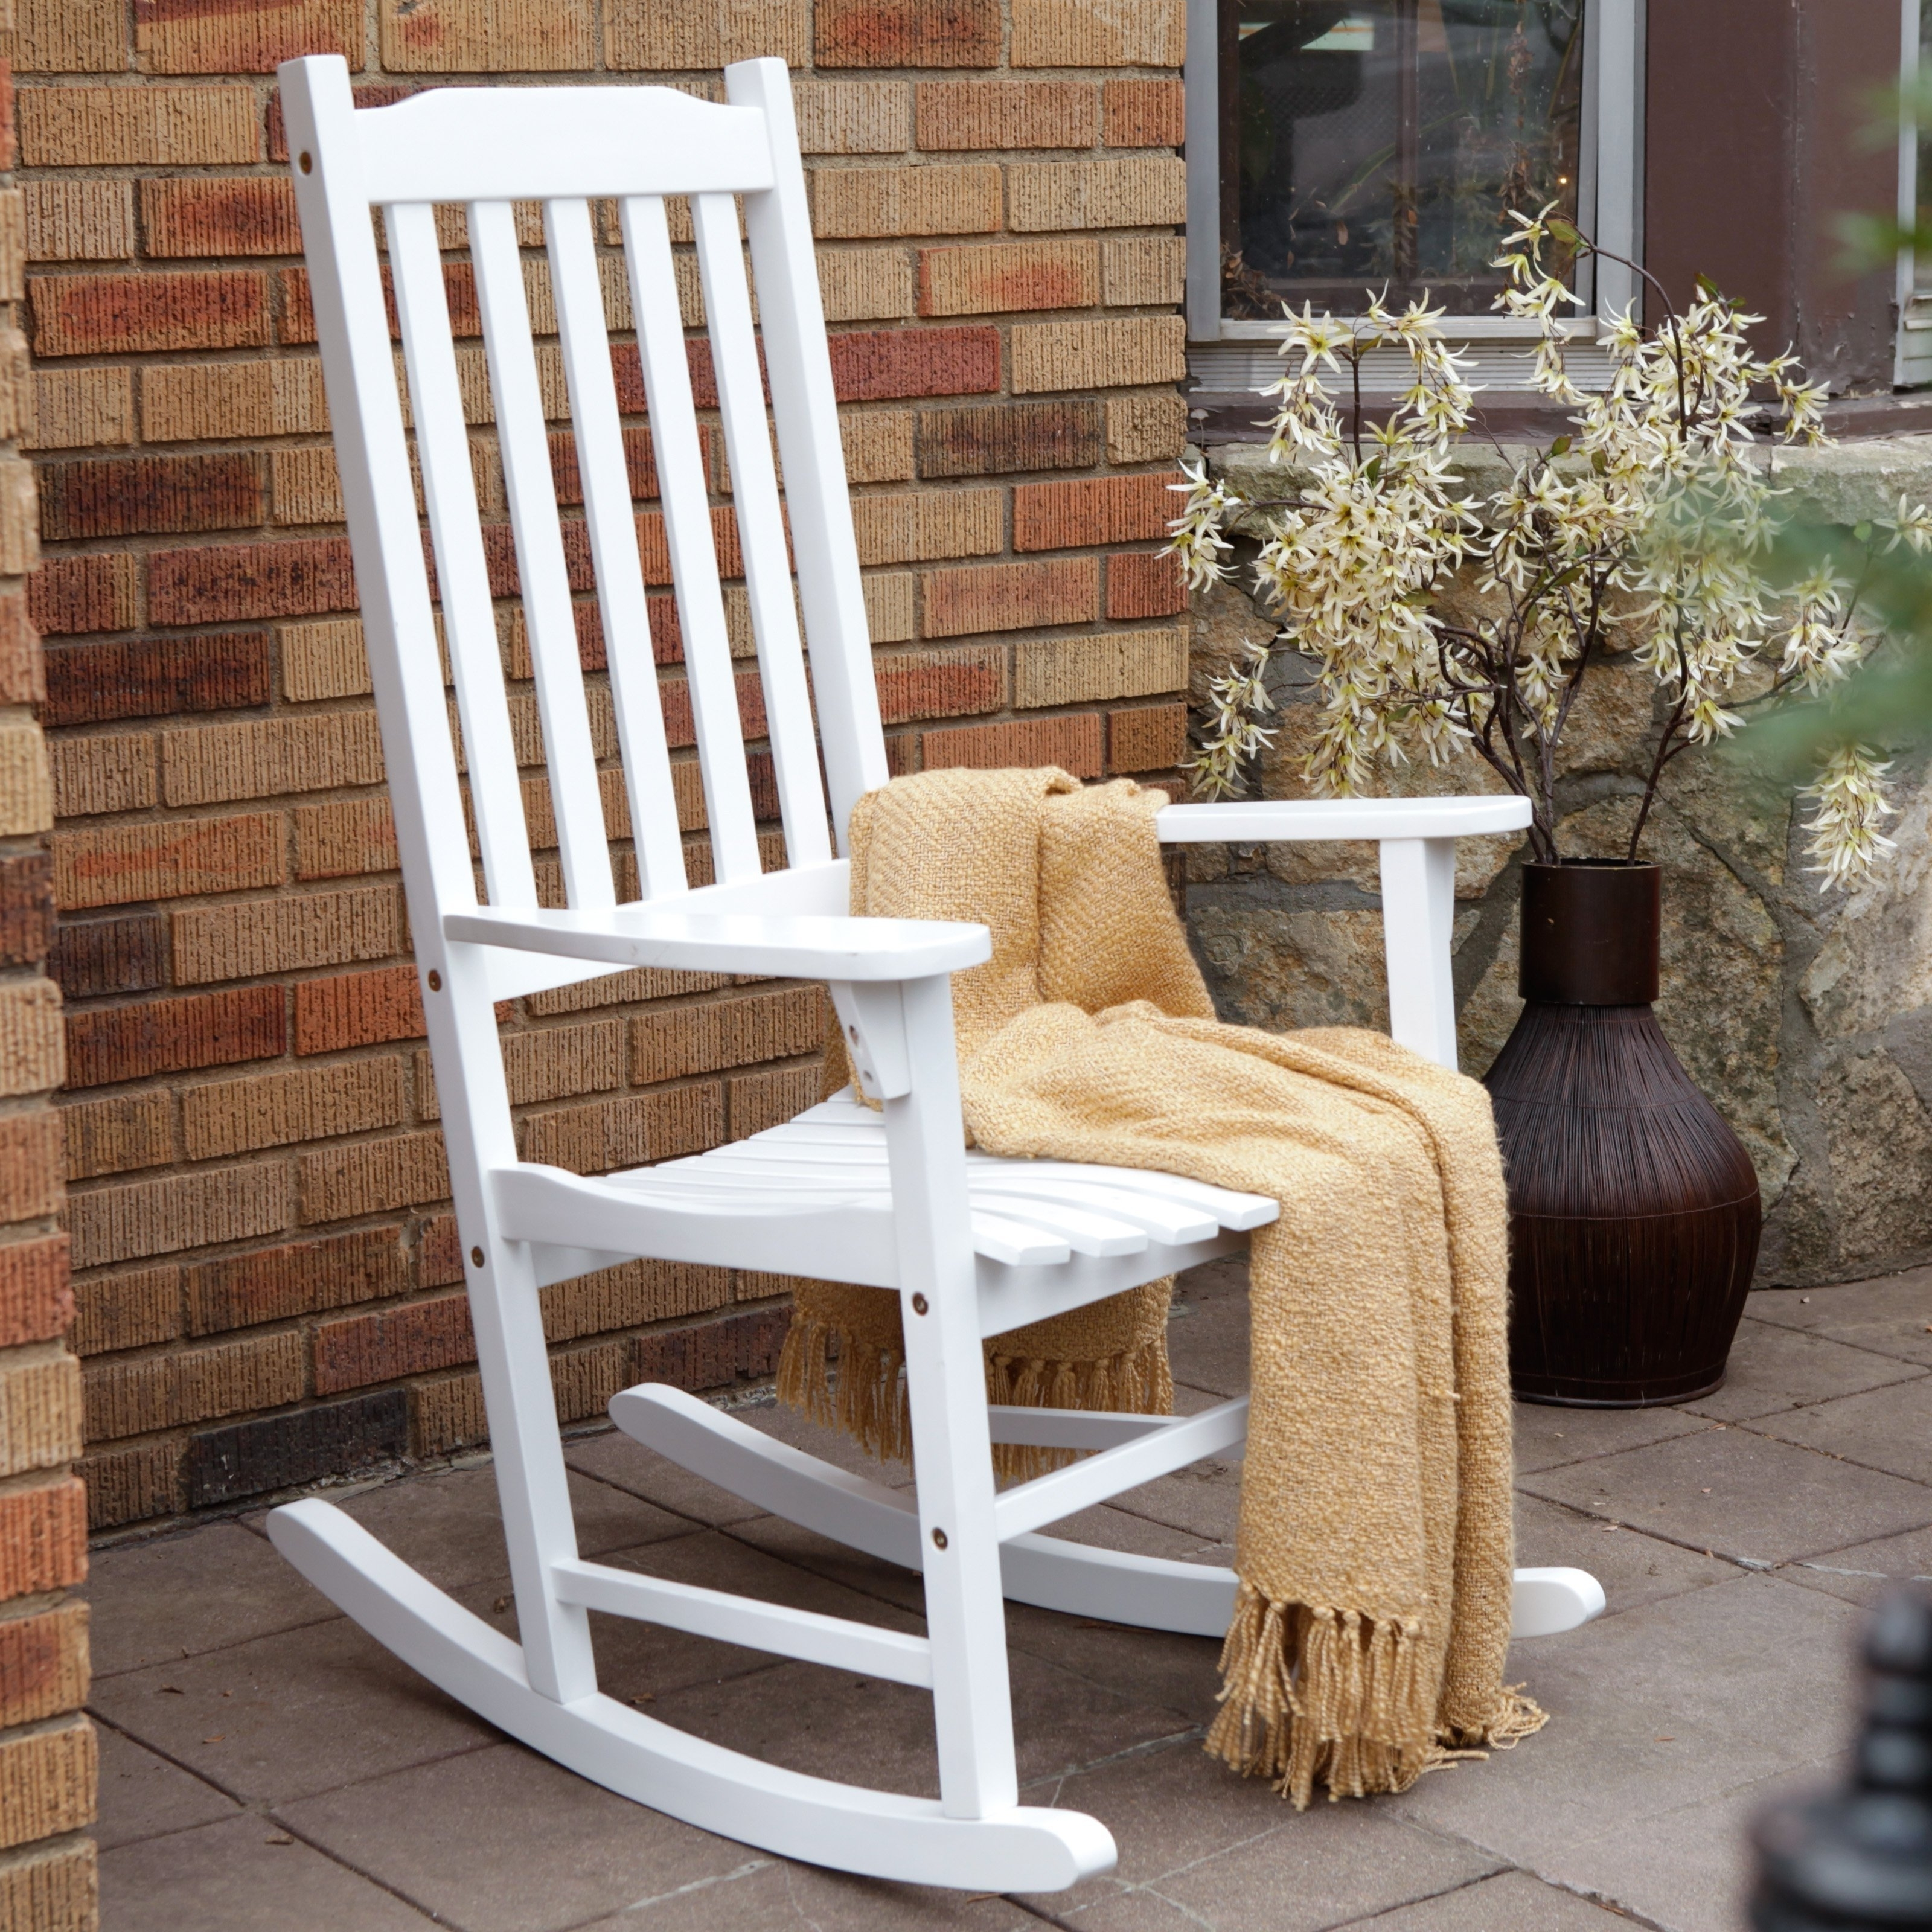 Popular Decorating Best Rated Outdoor Rocking Chairs Best Rocking Chair Best With Regard To Unique Outdoor Rocking Chairs (View 8 of 20)